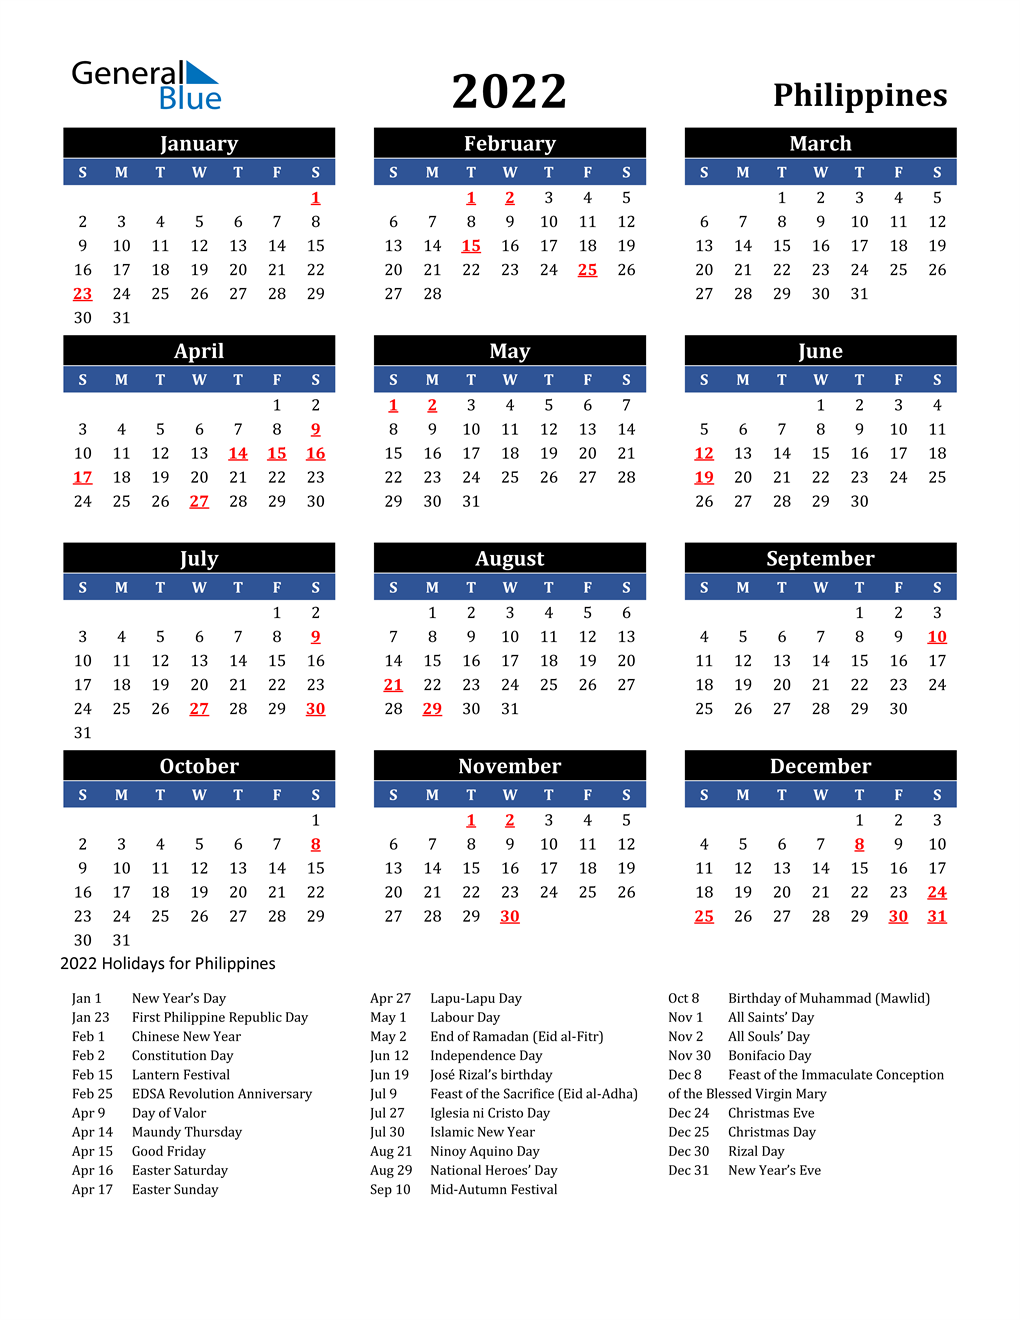 2022 Philippines Calendar With Holidays